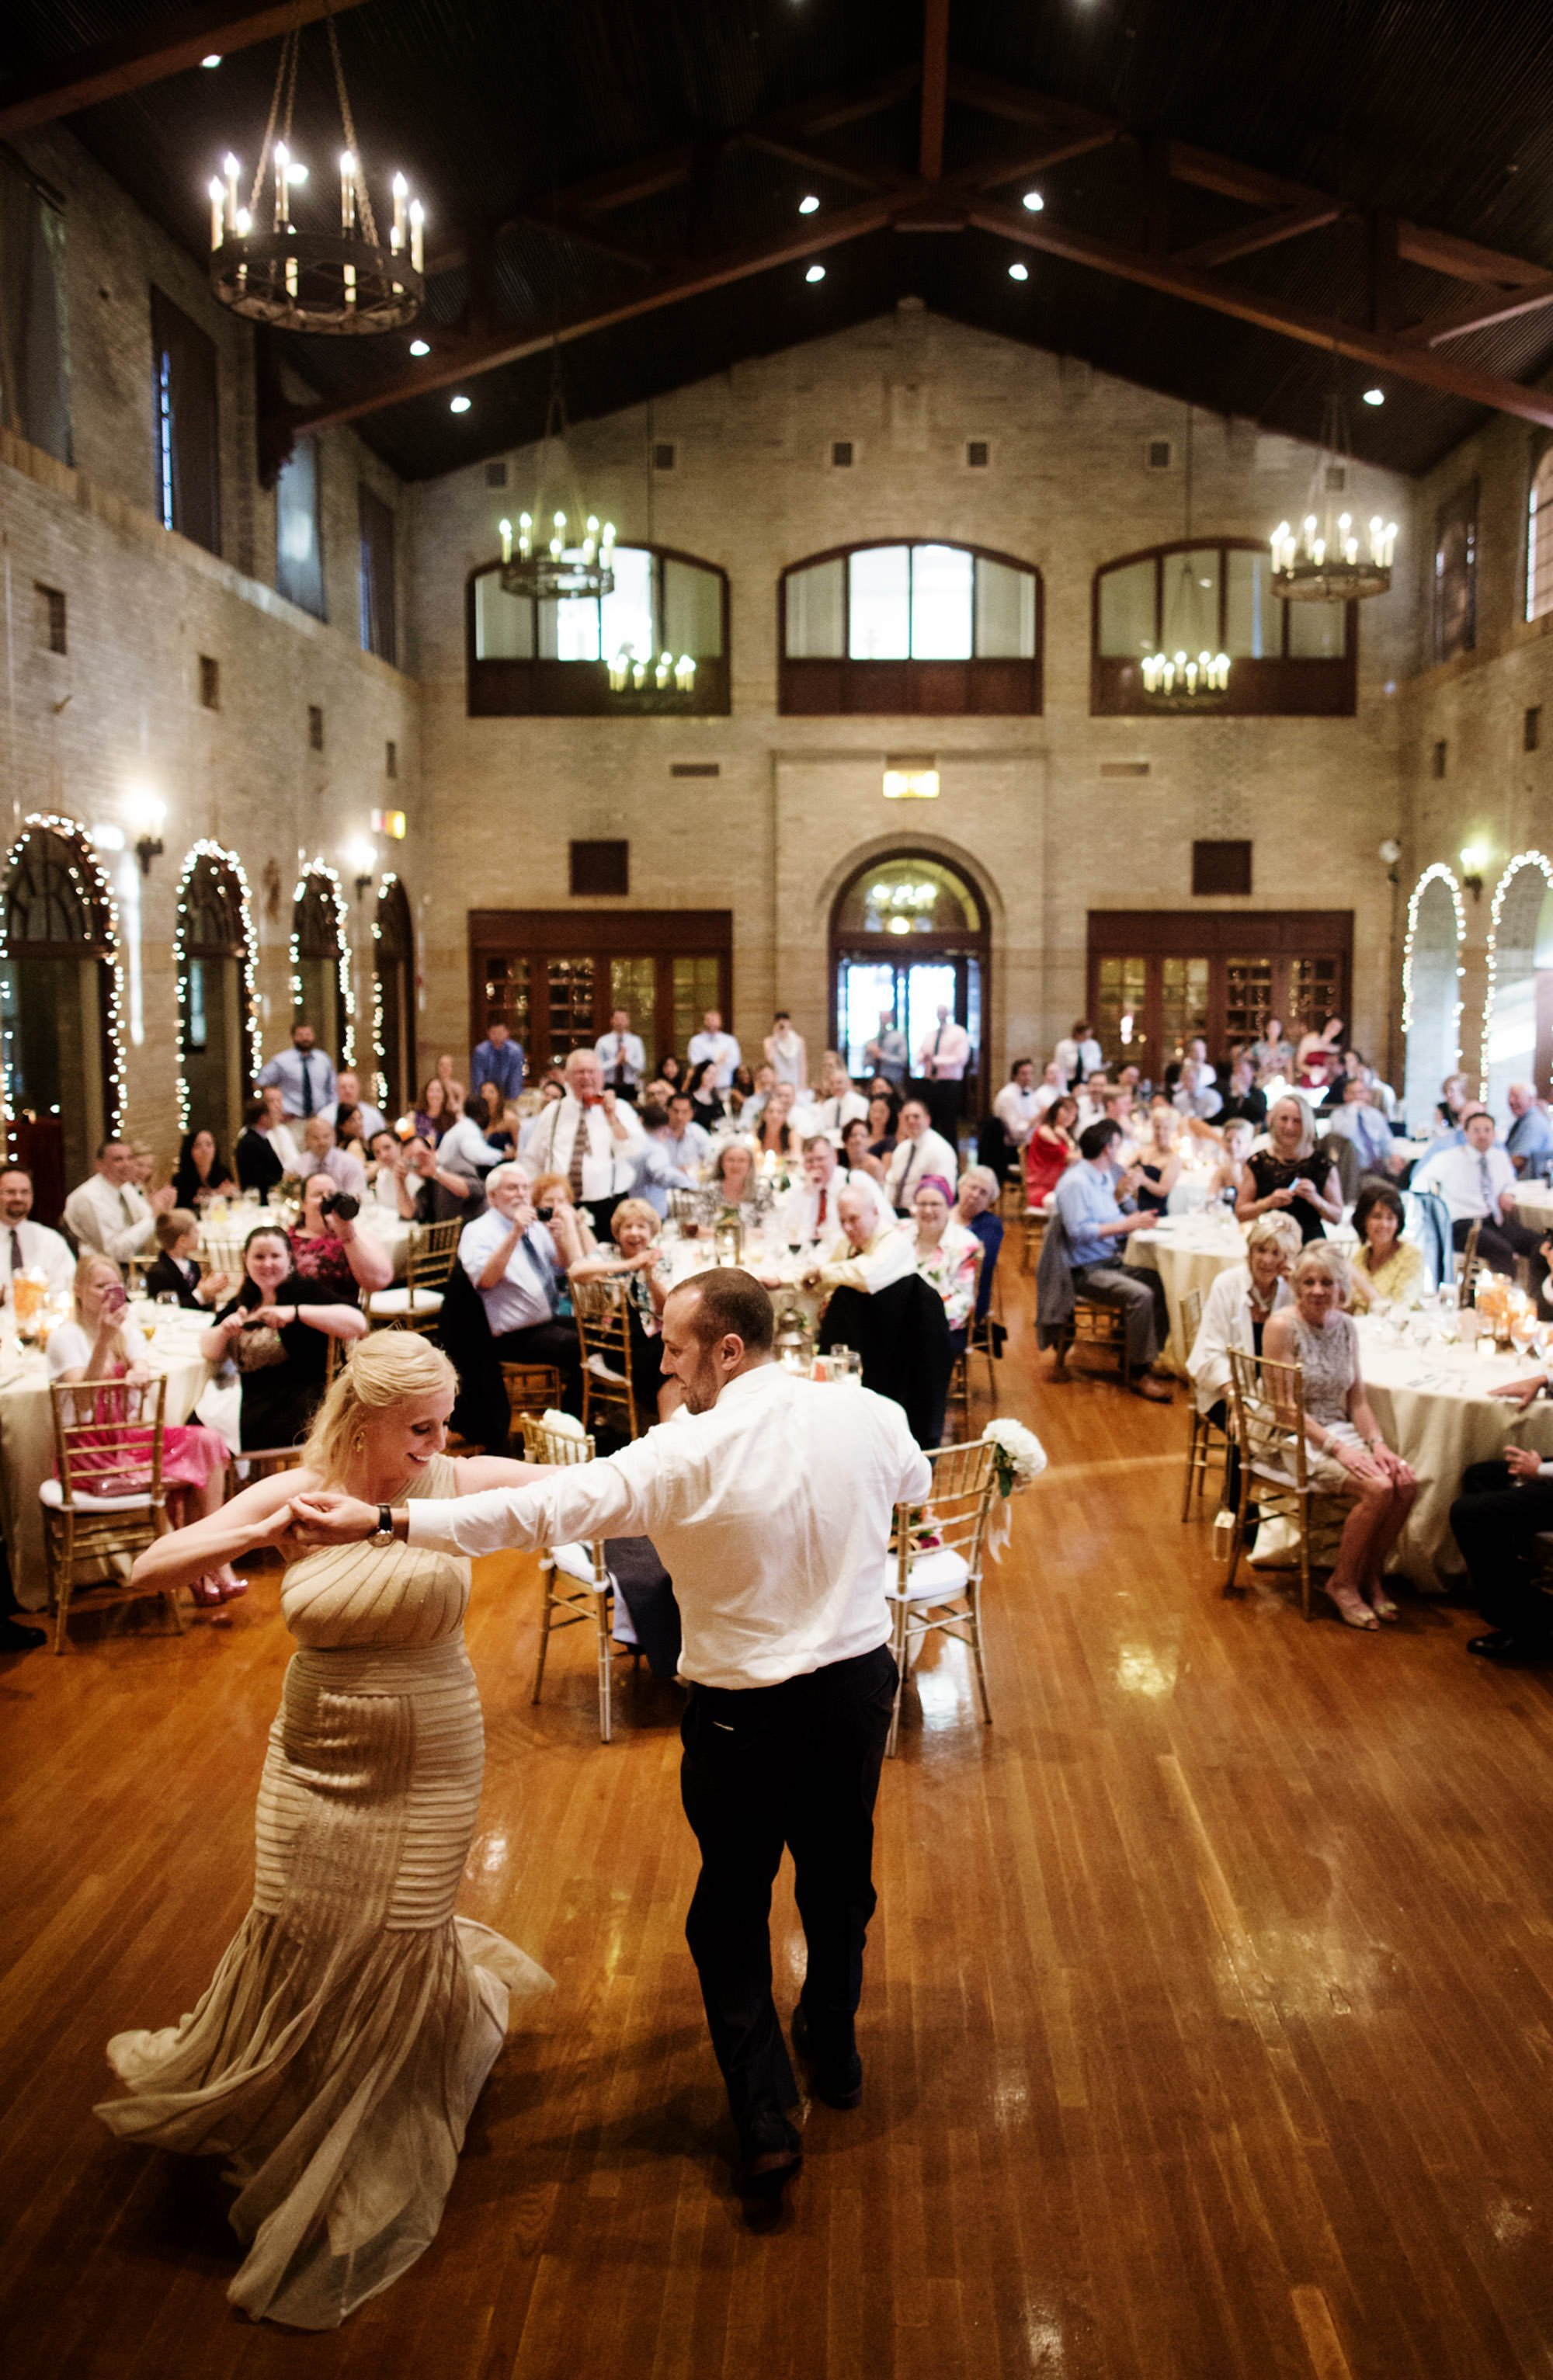 The bride and groom enjoy their first dance during their St Francis Hall wedding reception.